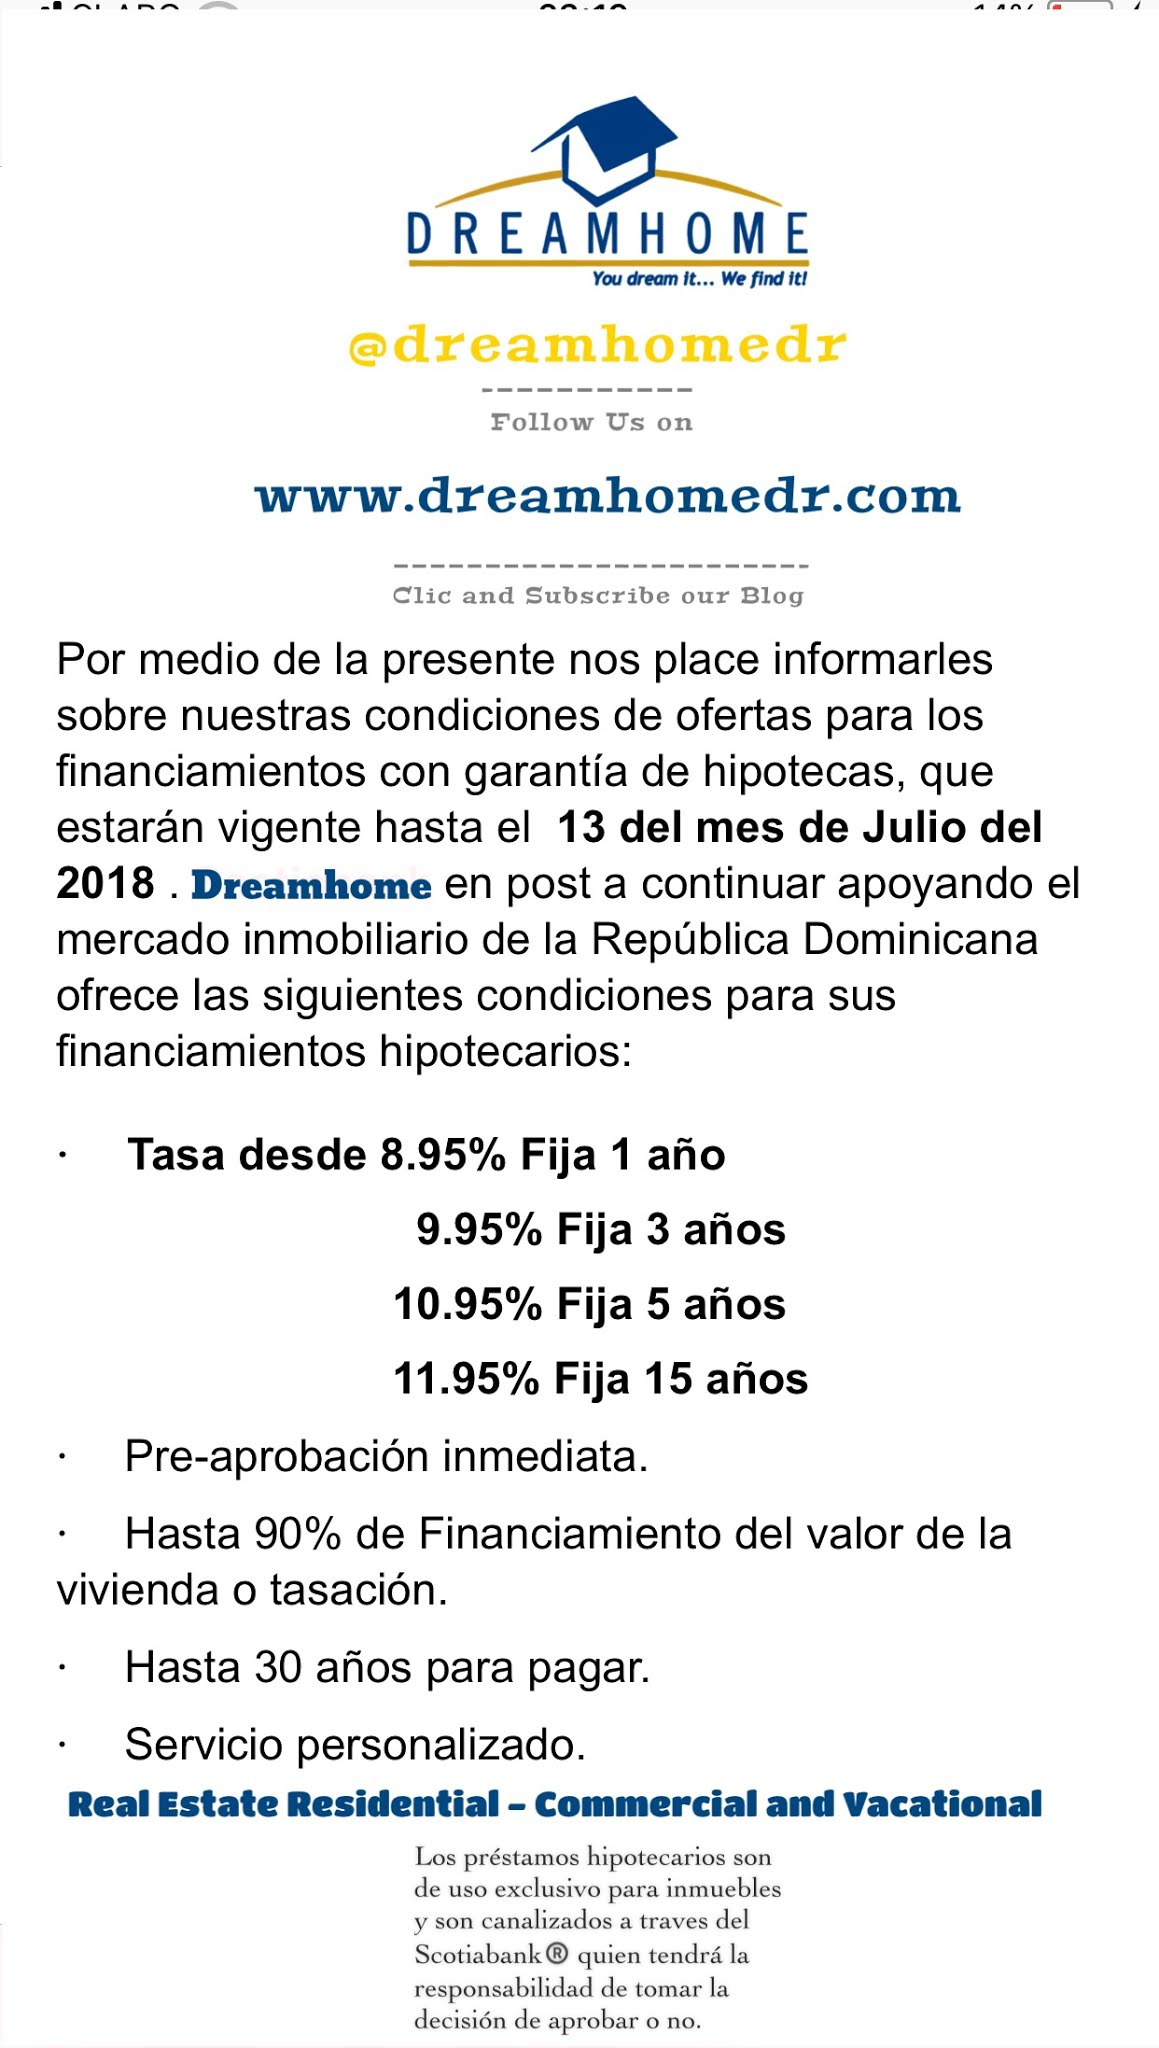 Condiciones Hipotecas Oferta De Financiamiento